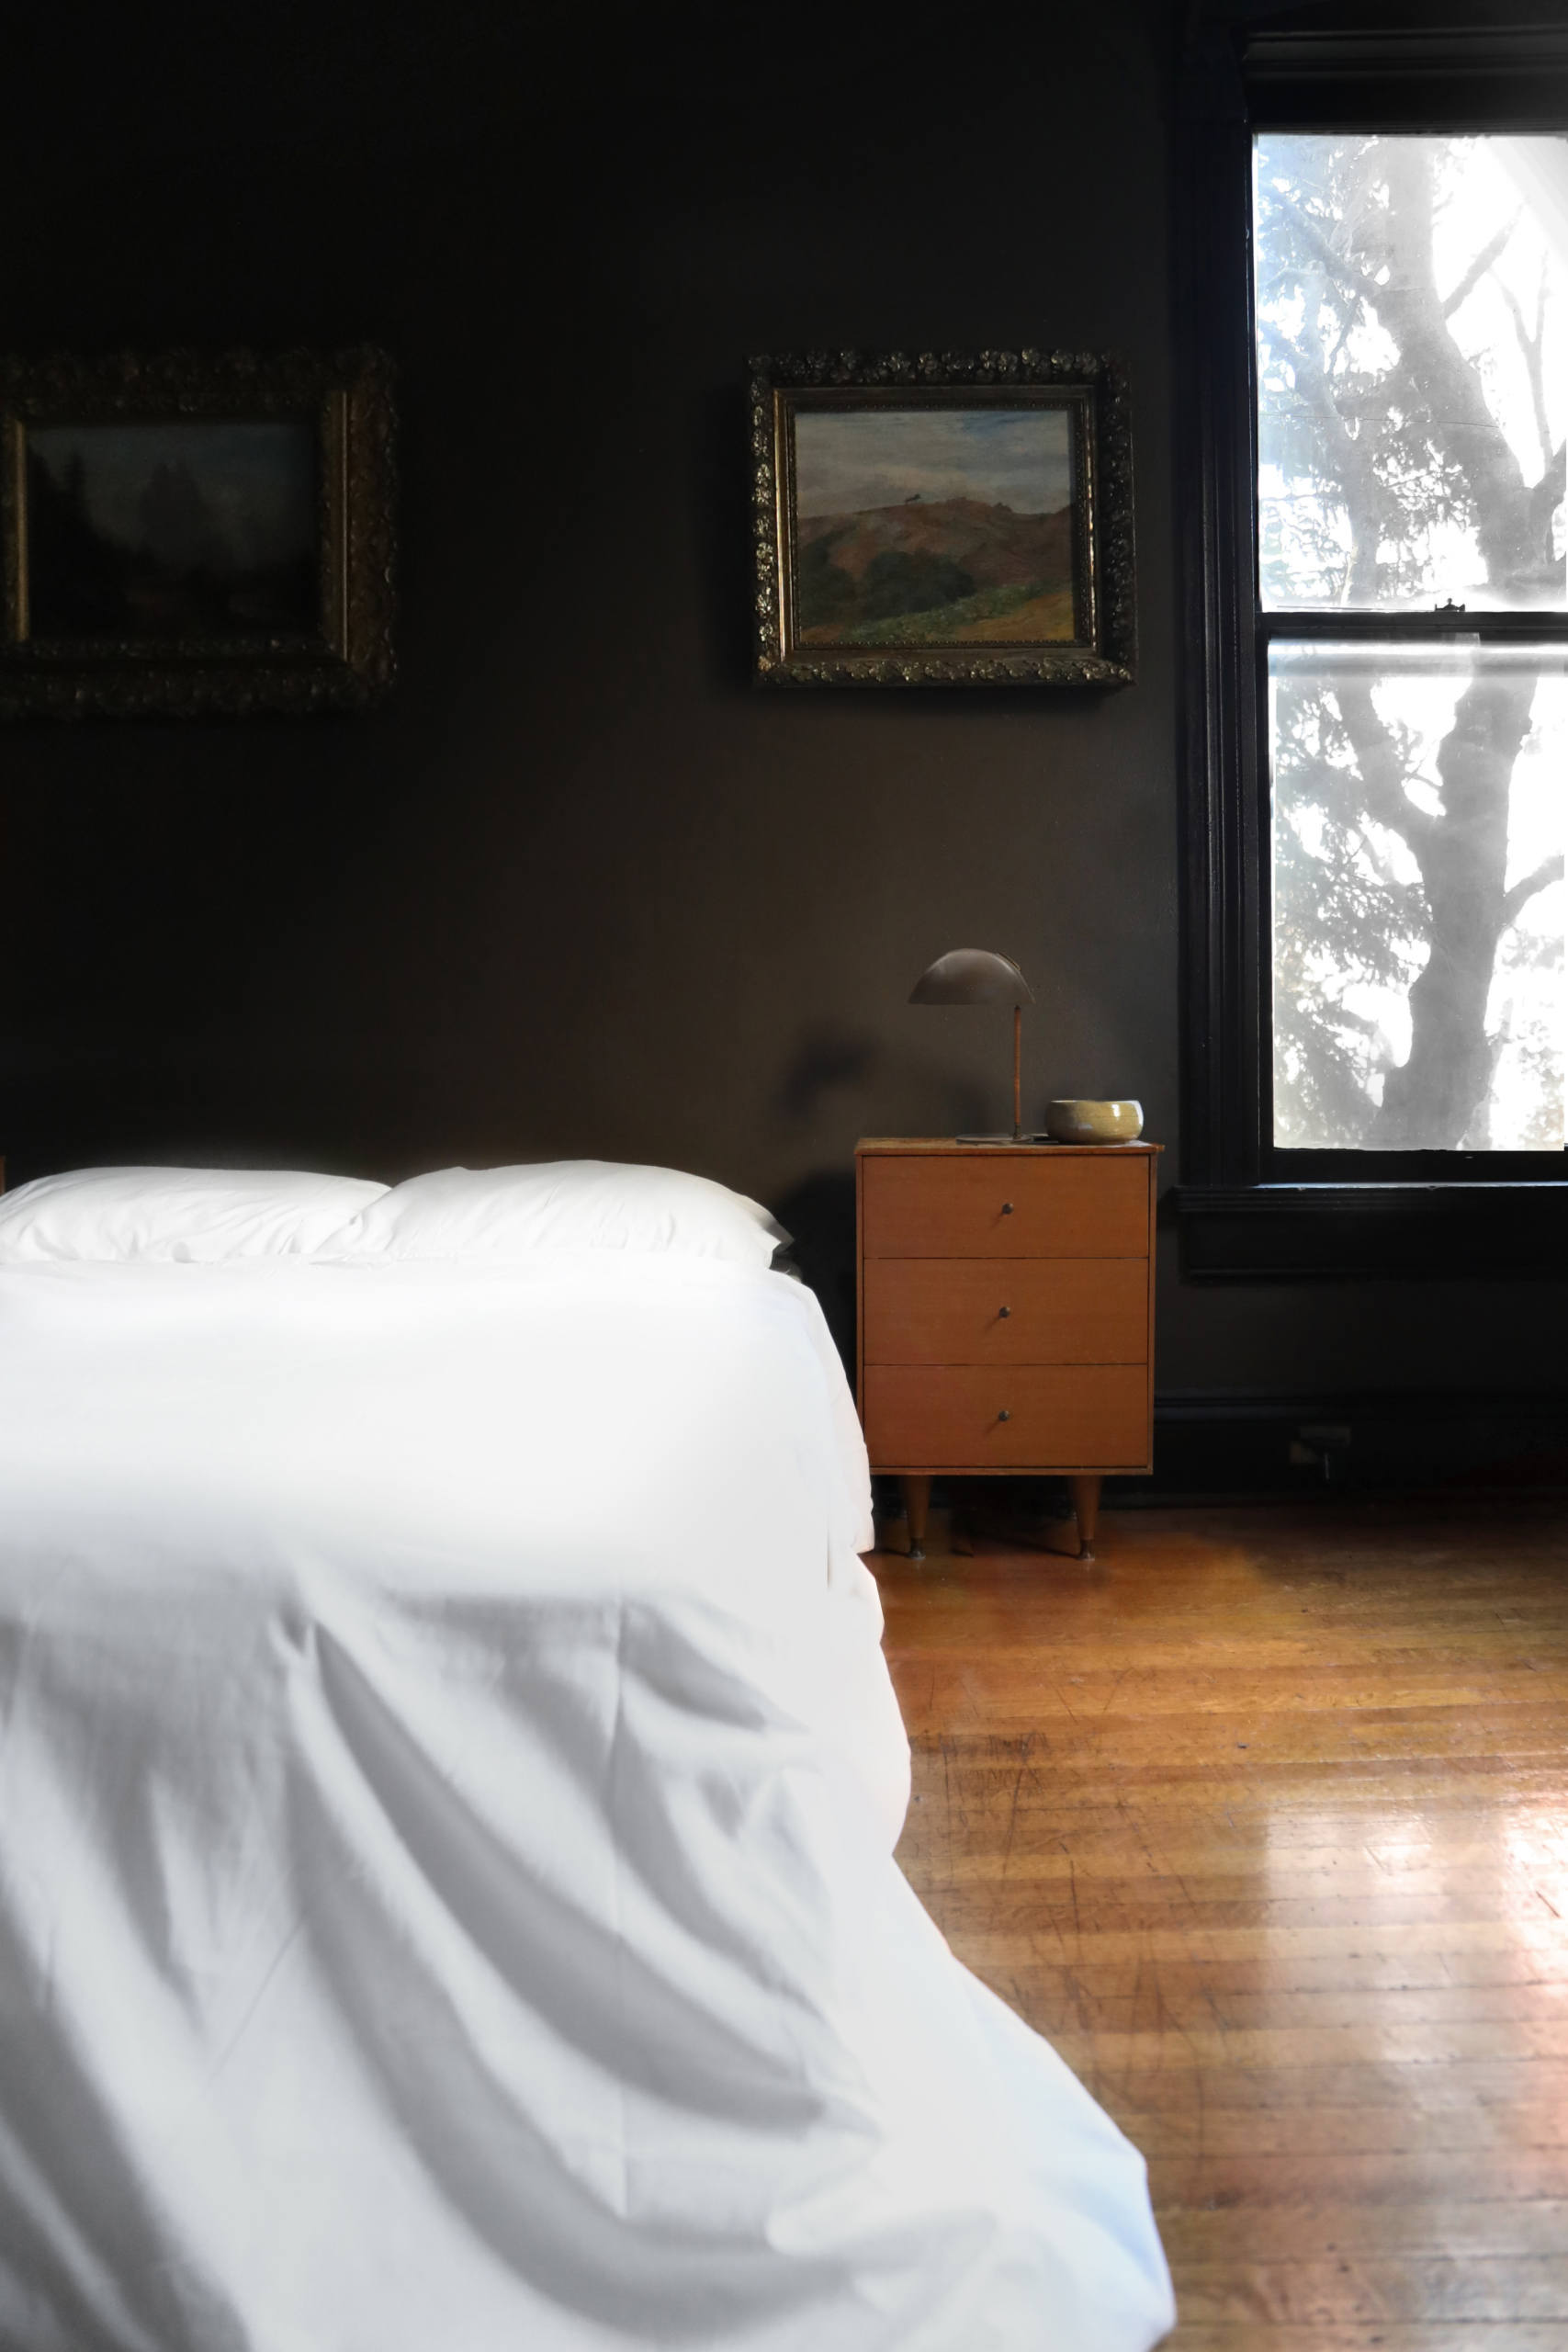 Pillowy white bedding contrasts with the moody walls.